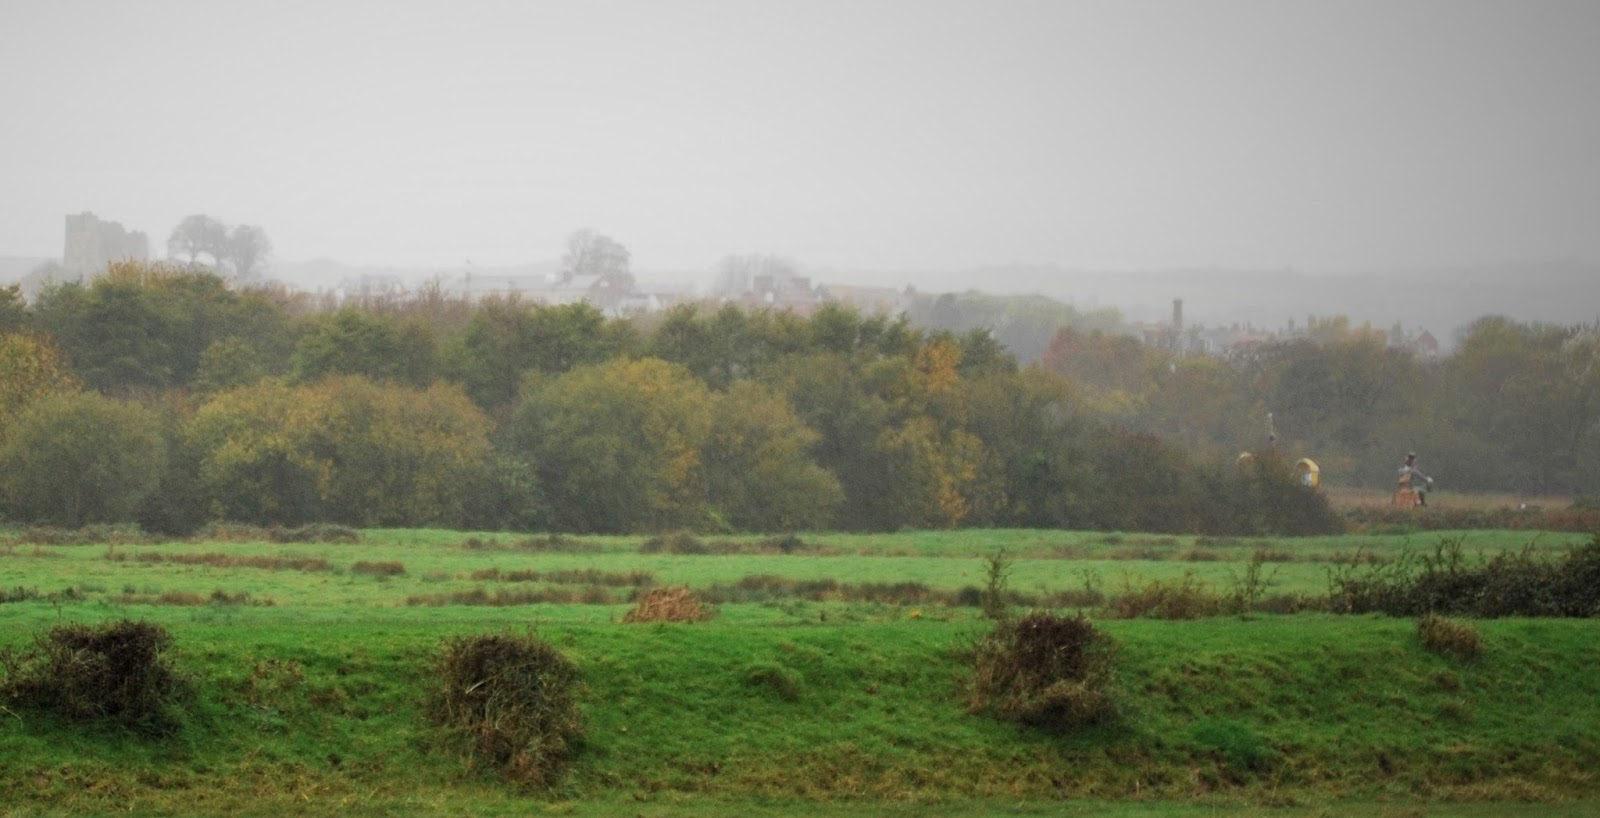 Lewes Castle in the distance